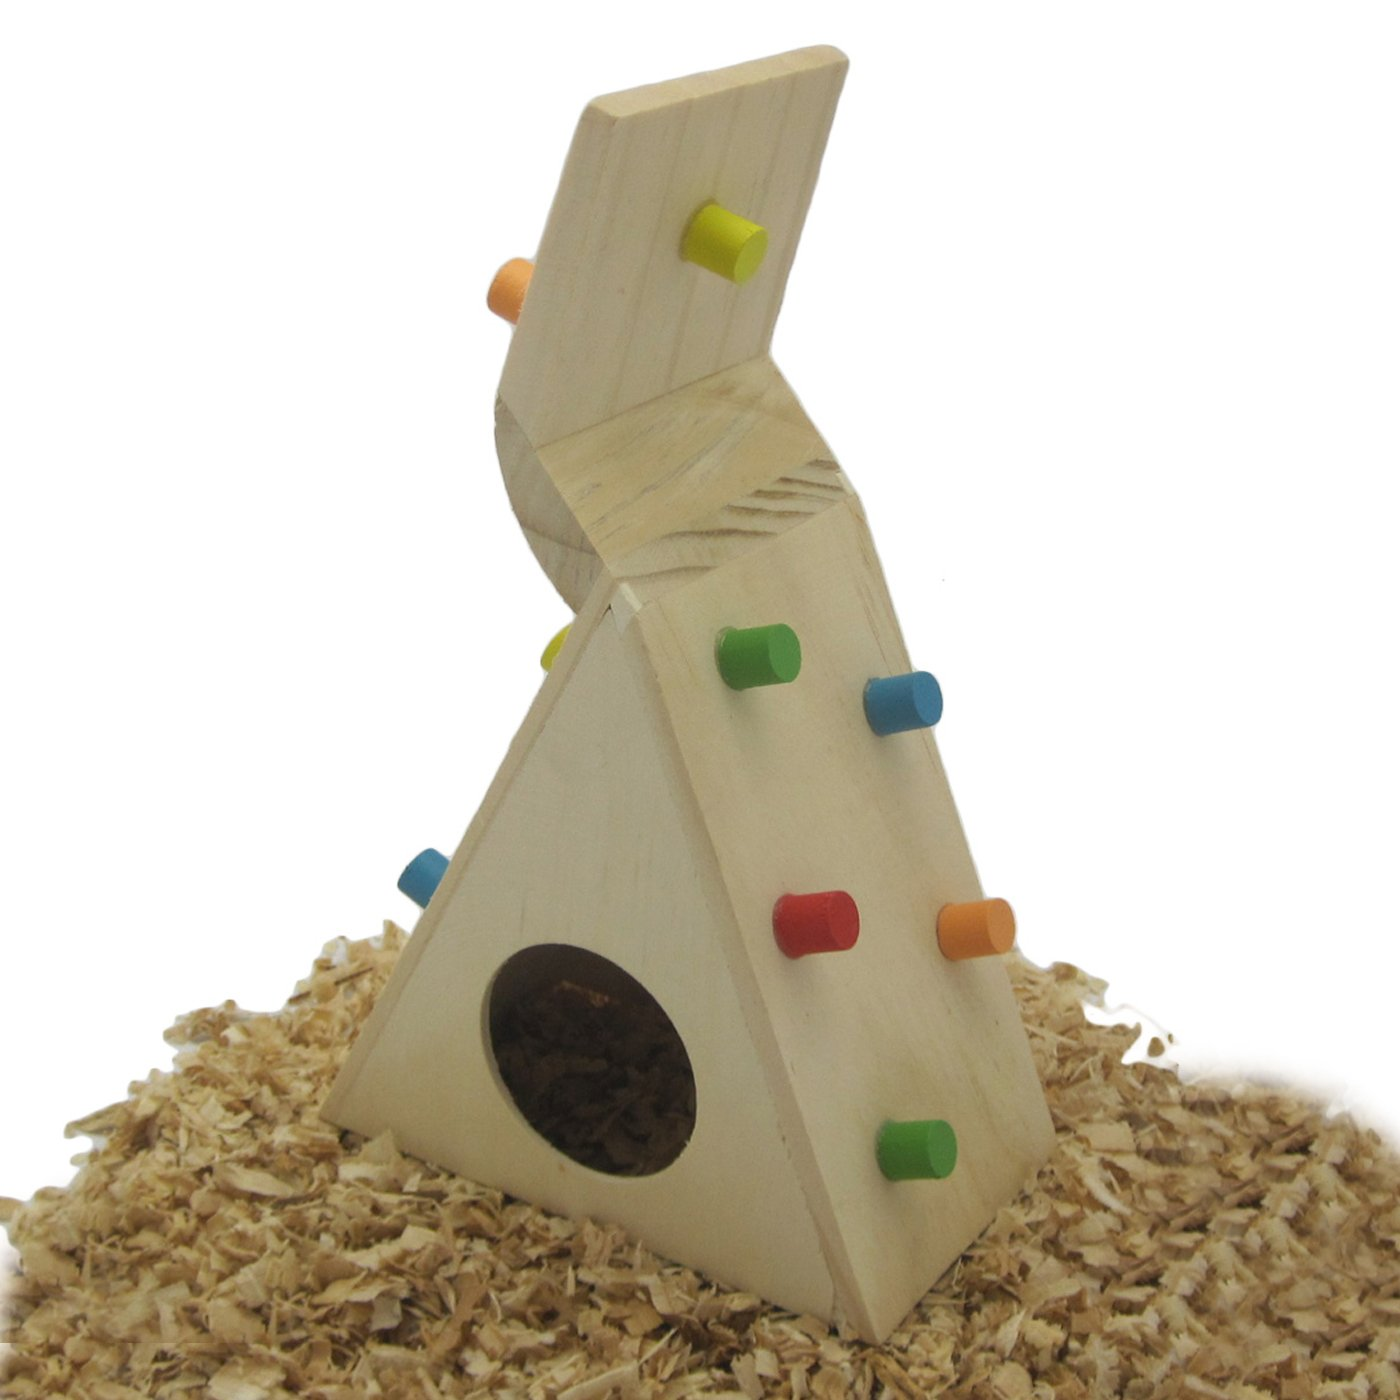 Alfie Pet by Petoga Couture - Small Animal Playground - Jami Wooden Climbing Hideout Toy for Small Animals like Dwarf Hamster and Mouse